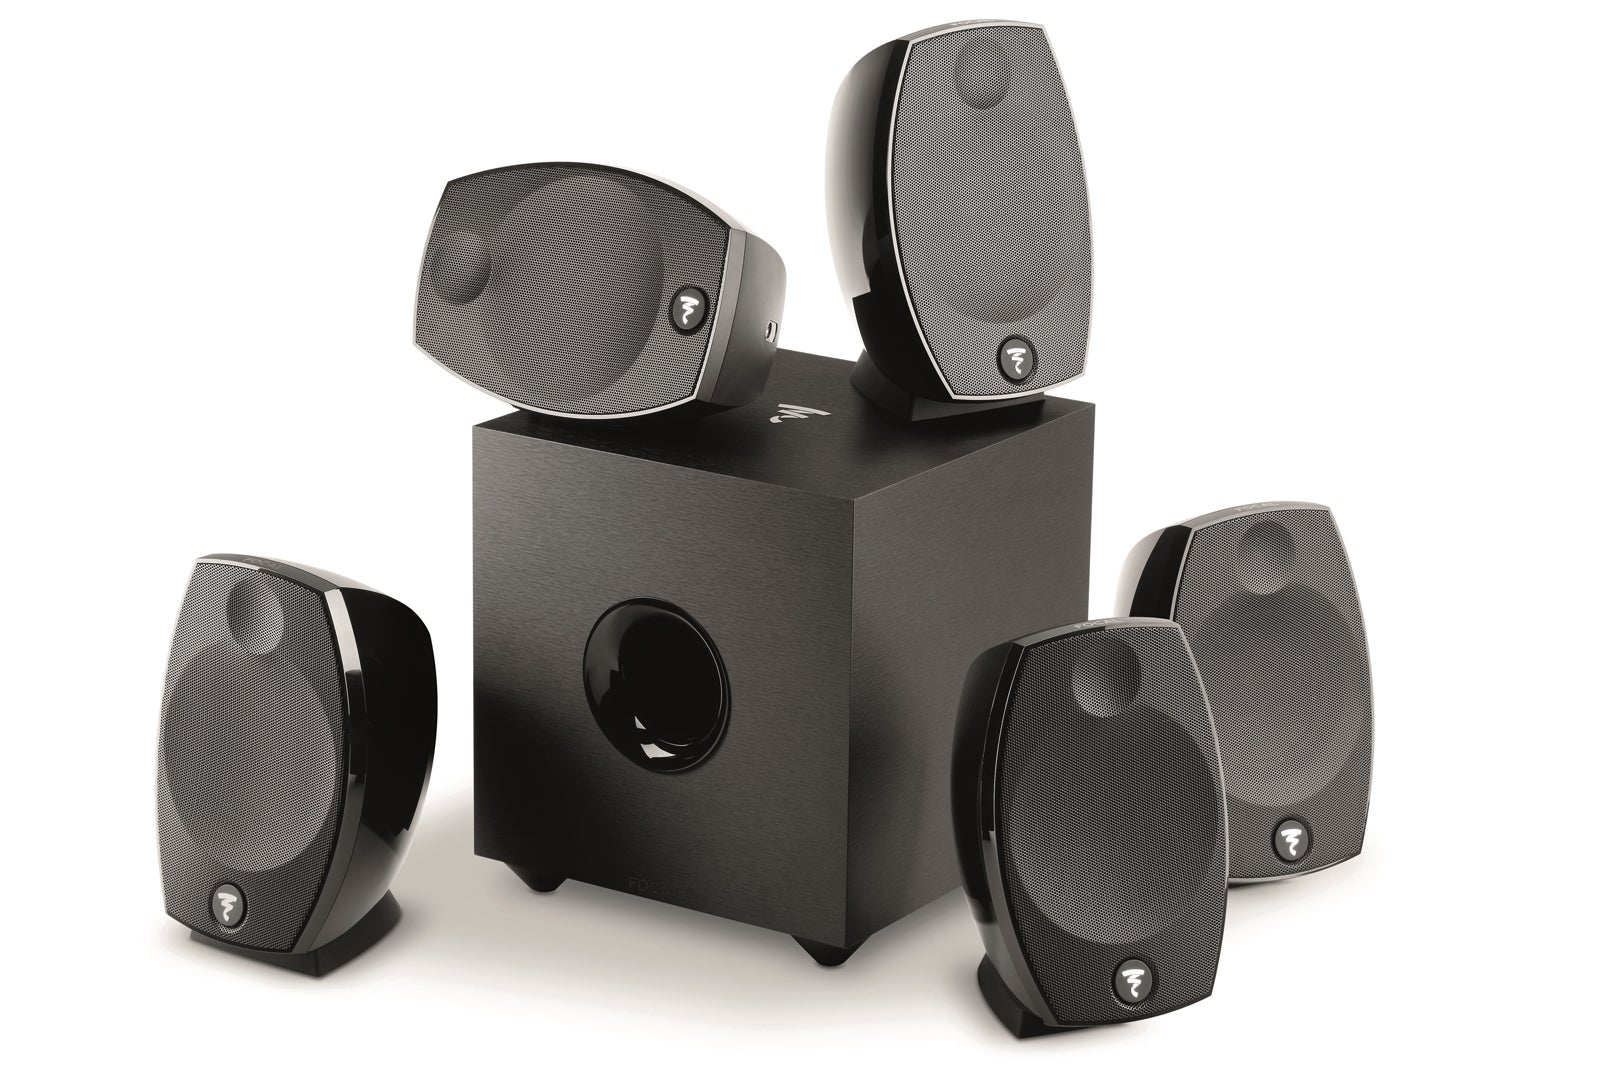 Focal Sib Evo Dolby Atmos 512 Speaker System Review A Convenient Wiring Home Speakers Ceiling But Ineffective Substitute For In Techhive